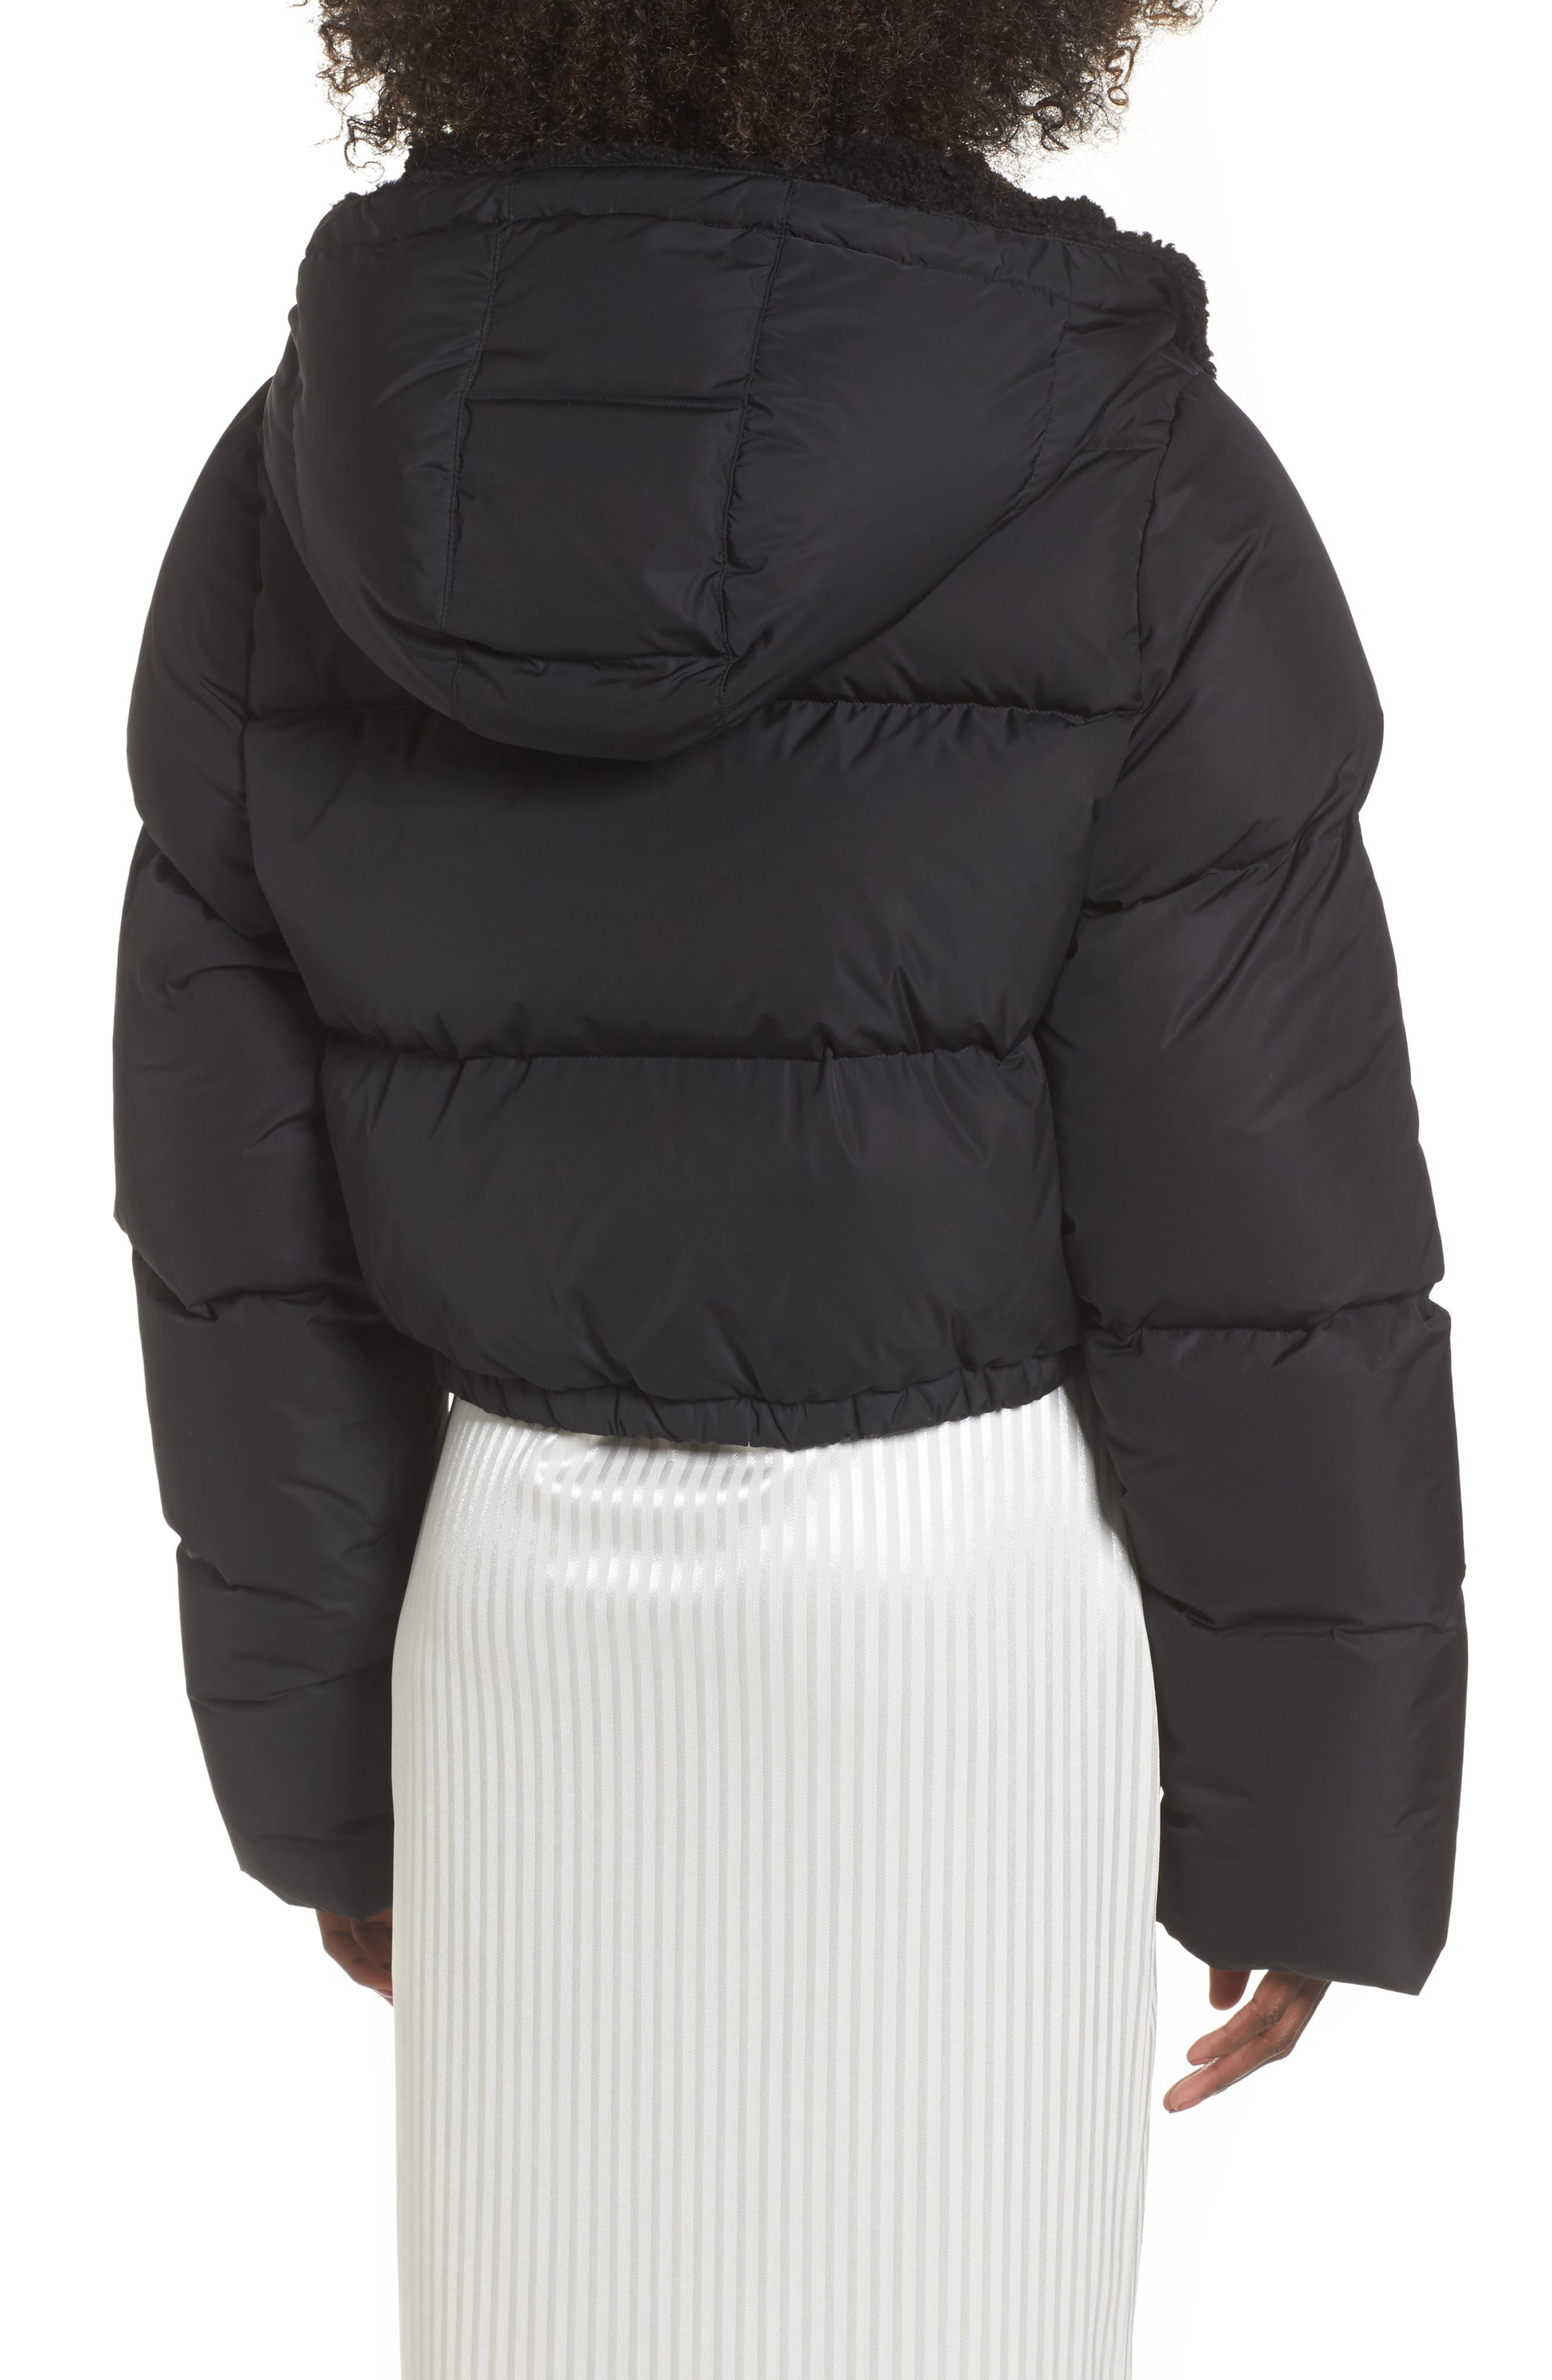 FENTY PUMA by Rihanna Quilted Bomber,                             Alternate thumbnail 2, color,                             Puma Black